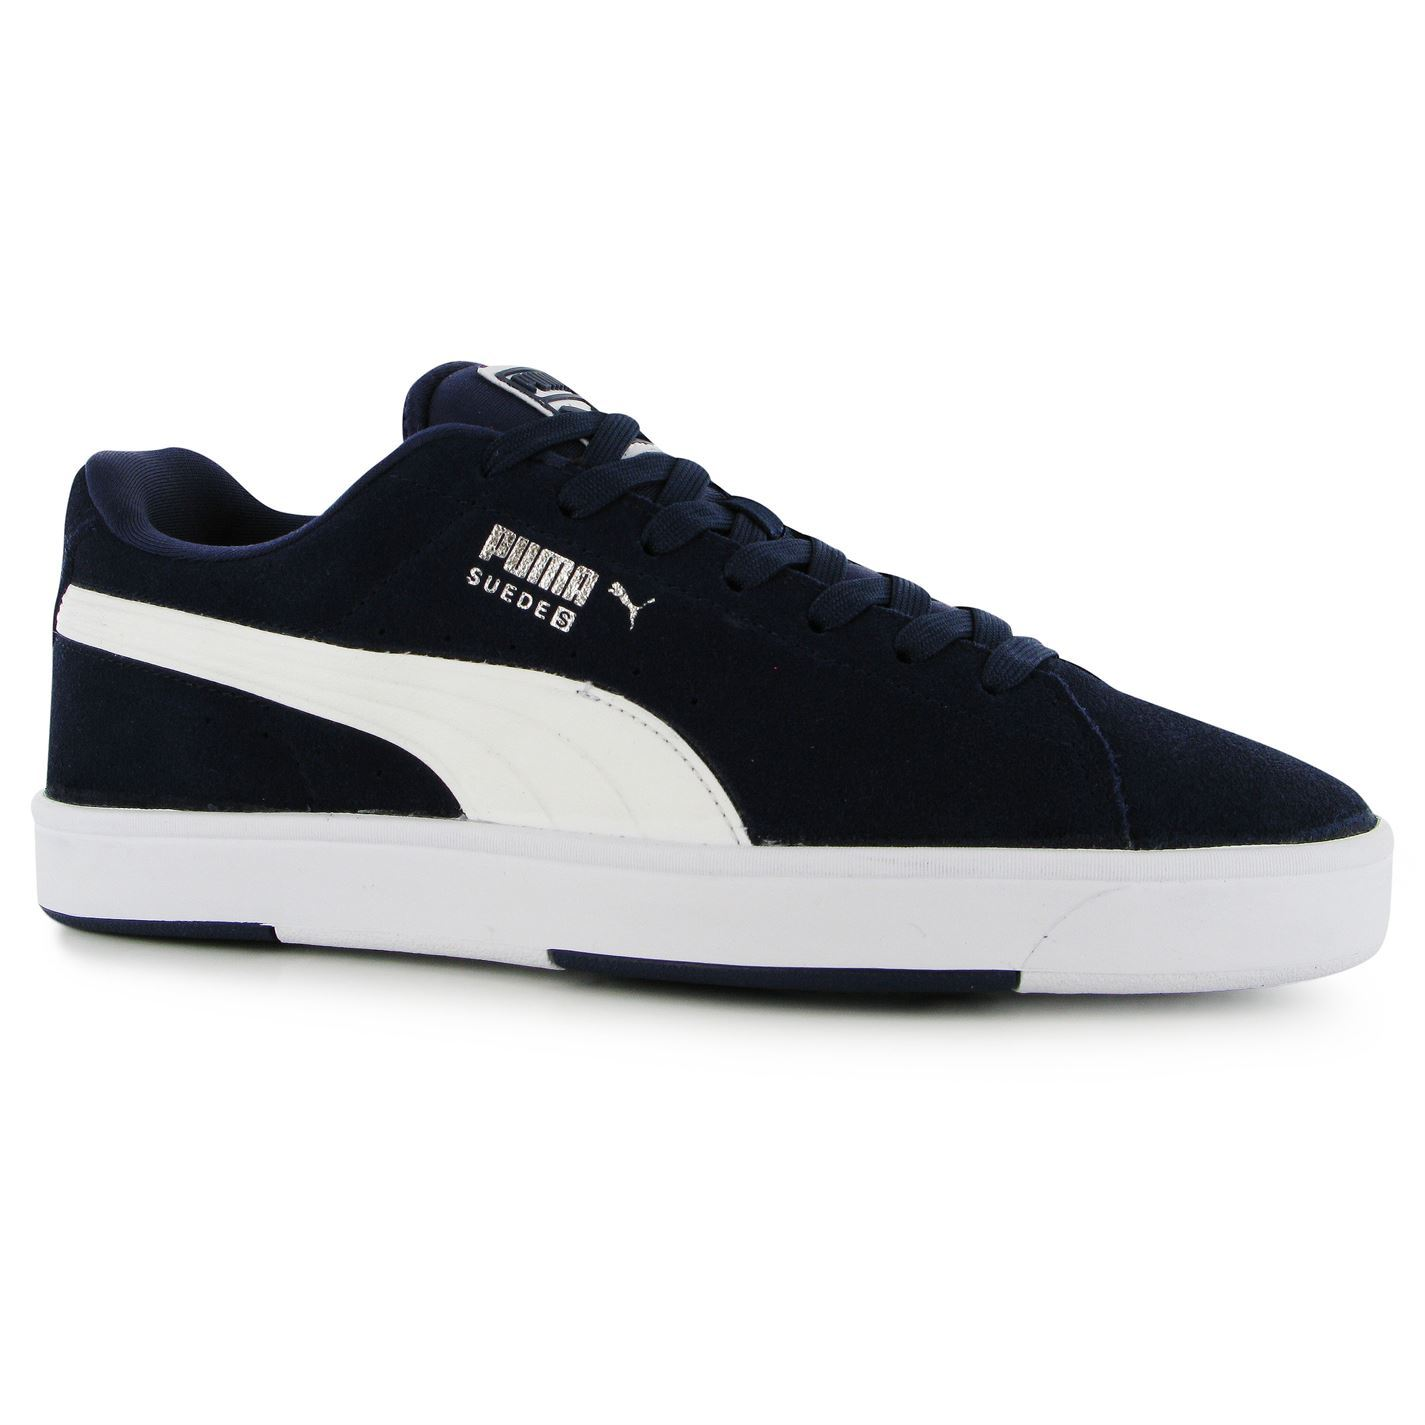 fd142b19ff9 Puma Suede S Trainers Mens Navy White Casual Sneakers Shoes Footwear ...